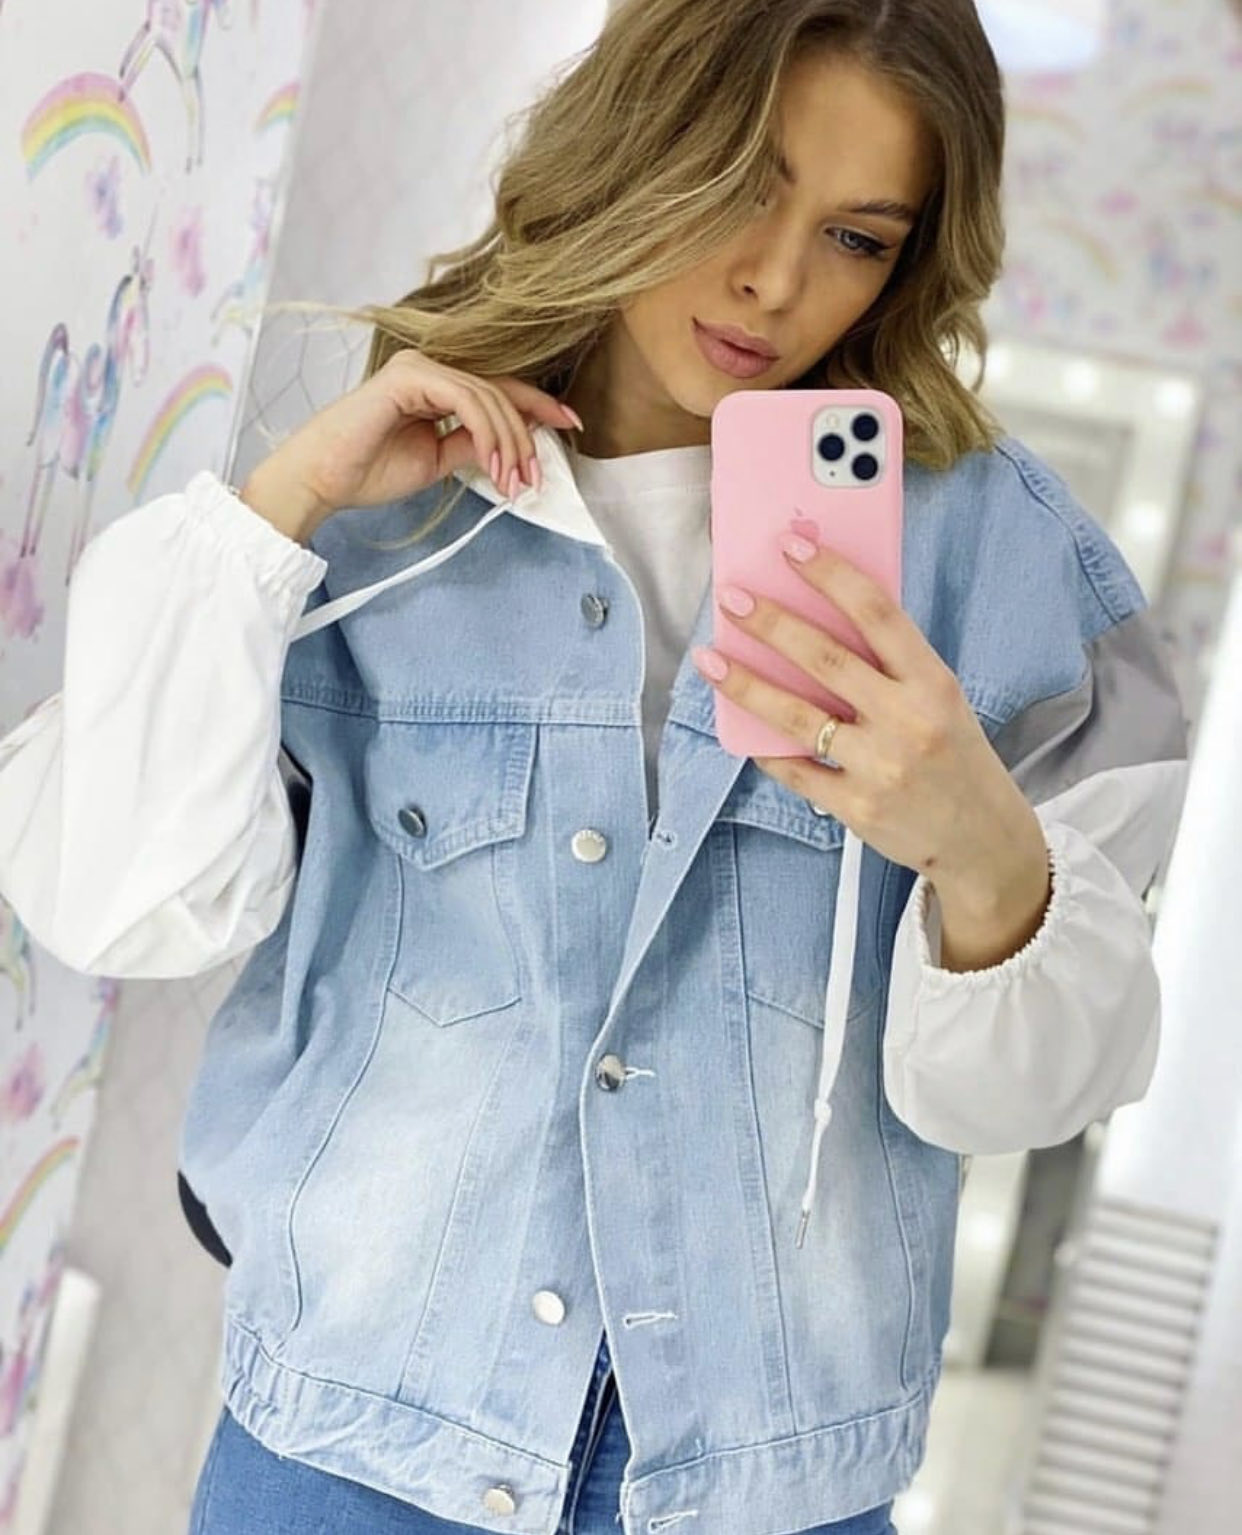 <p>I am looking for&nbsp;women&#39;s clothing: sweaters, blouses, cardigans, vests, jeans, etc. I want to buy in bulk. I am looking for honest, decent, reliable suppliers who are interested in working on a long-term basis. Thanks for your attention! Purchase volume: from 50-300 units per month&nbsp;</p>  <p>&nbsp;</p>  <p><em>(translated from russian)</em></p>